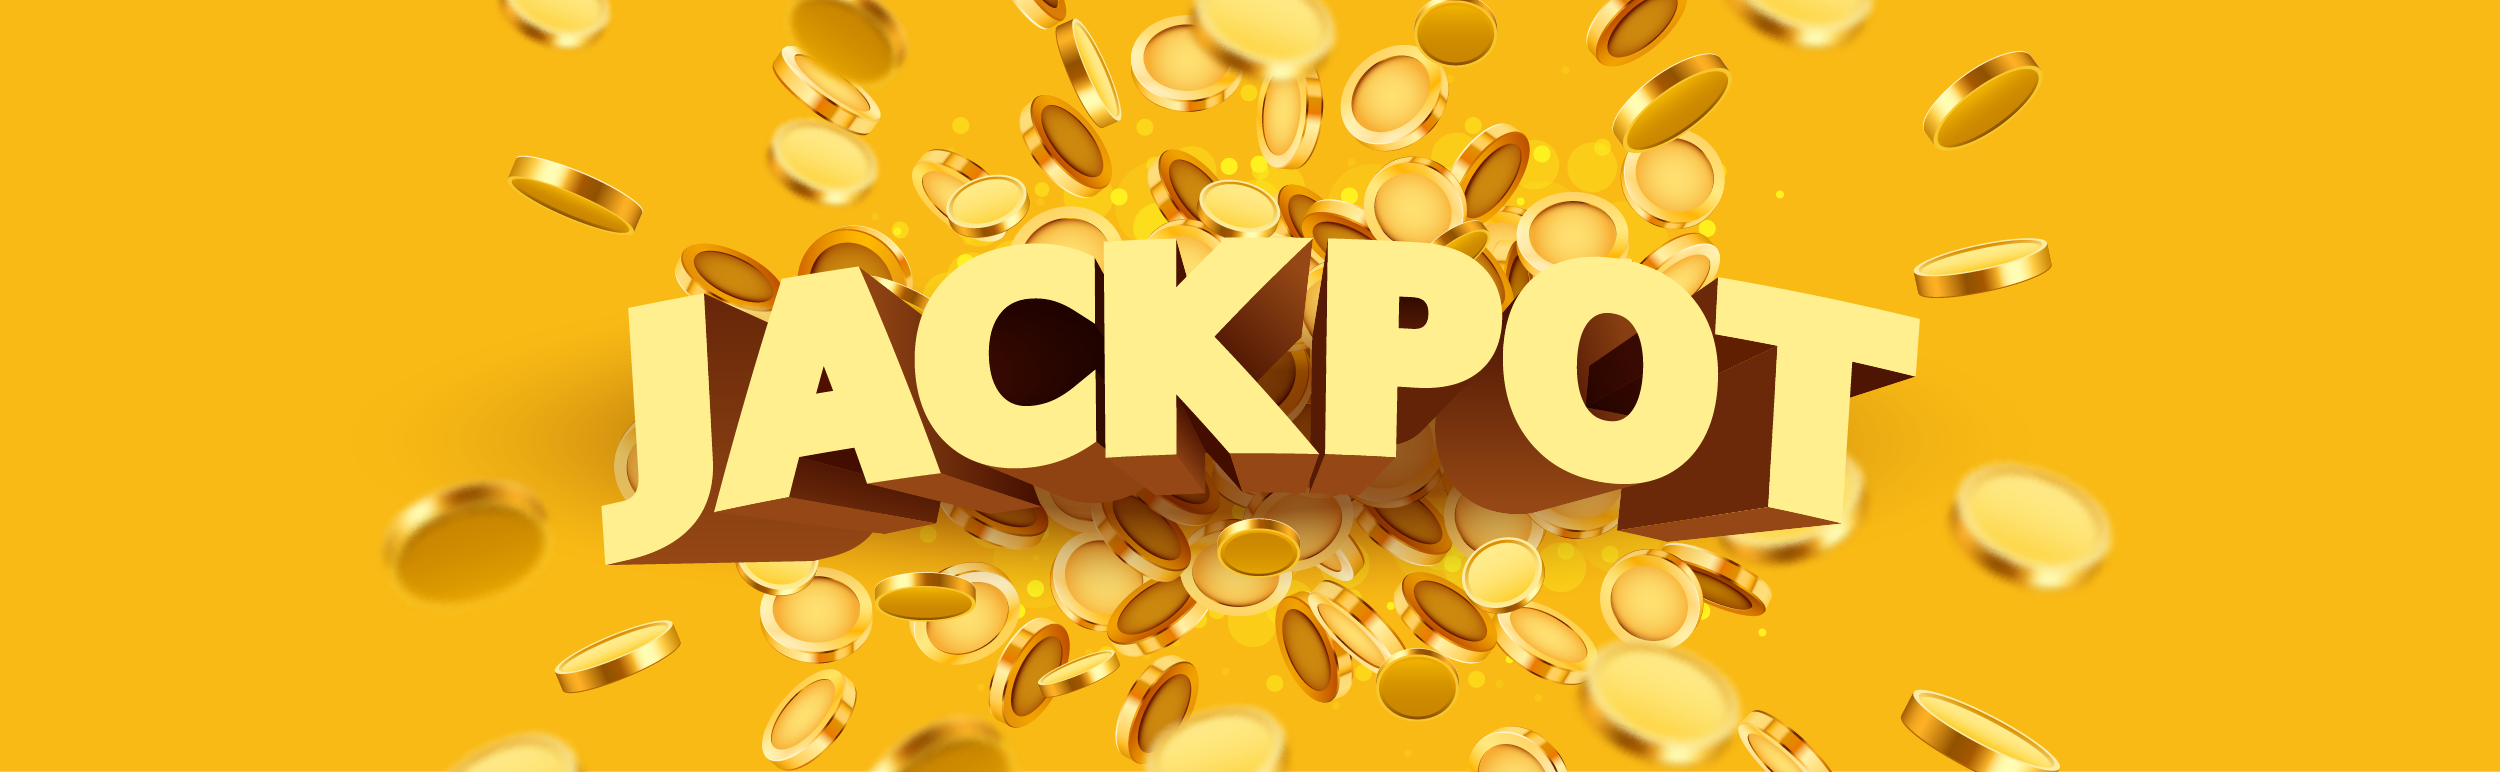 All About Jackpots: Table Game Jackpots and Jackpot Pokies